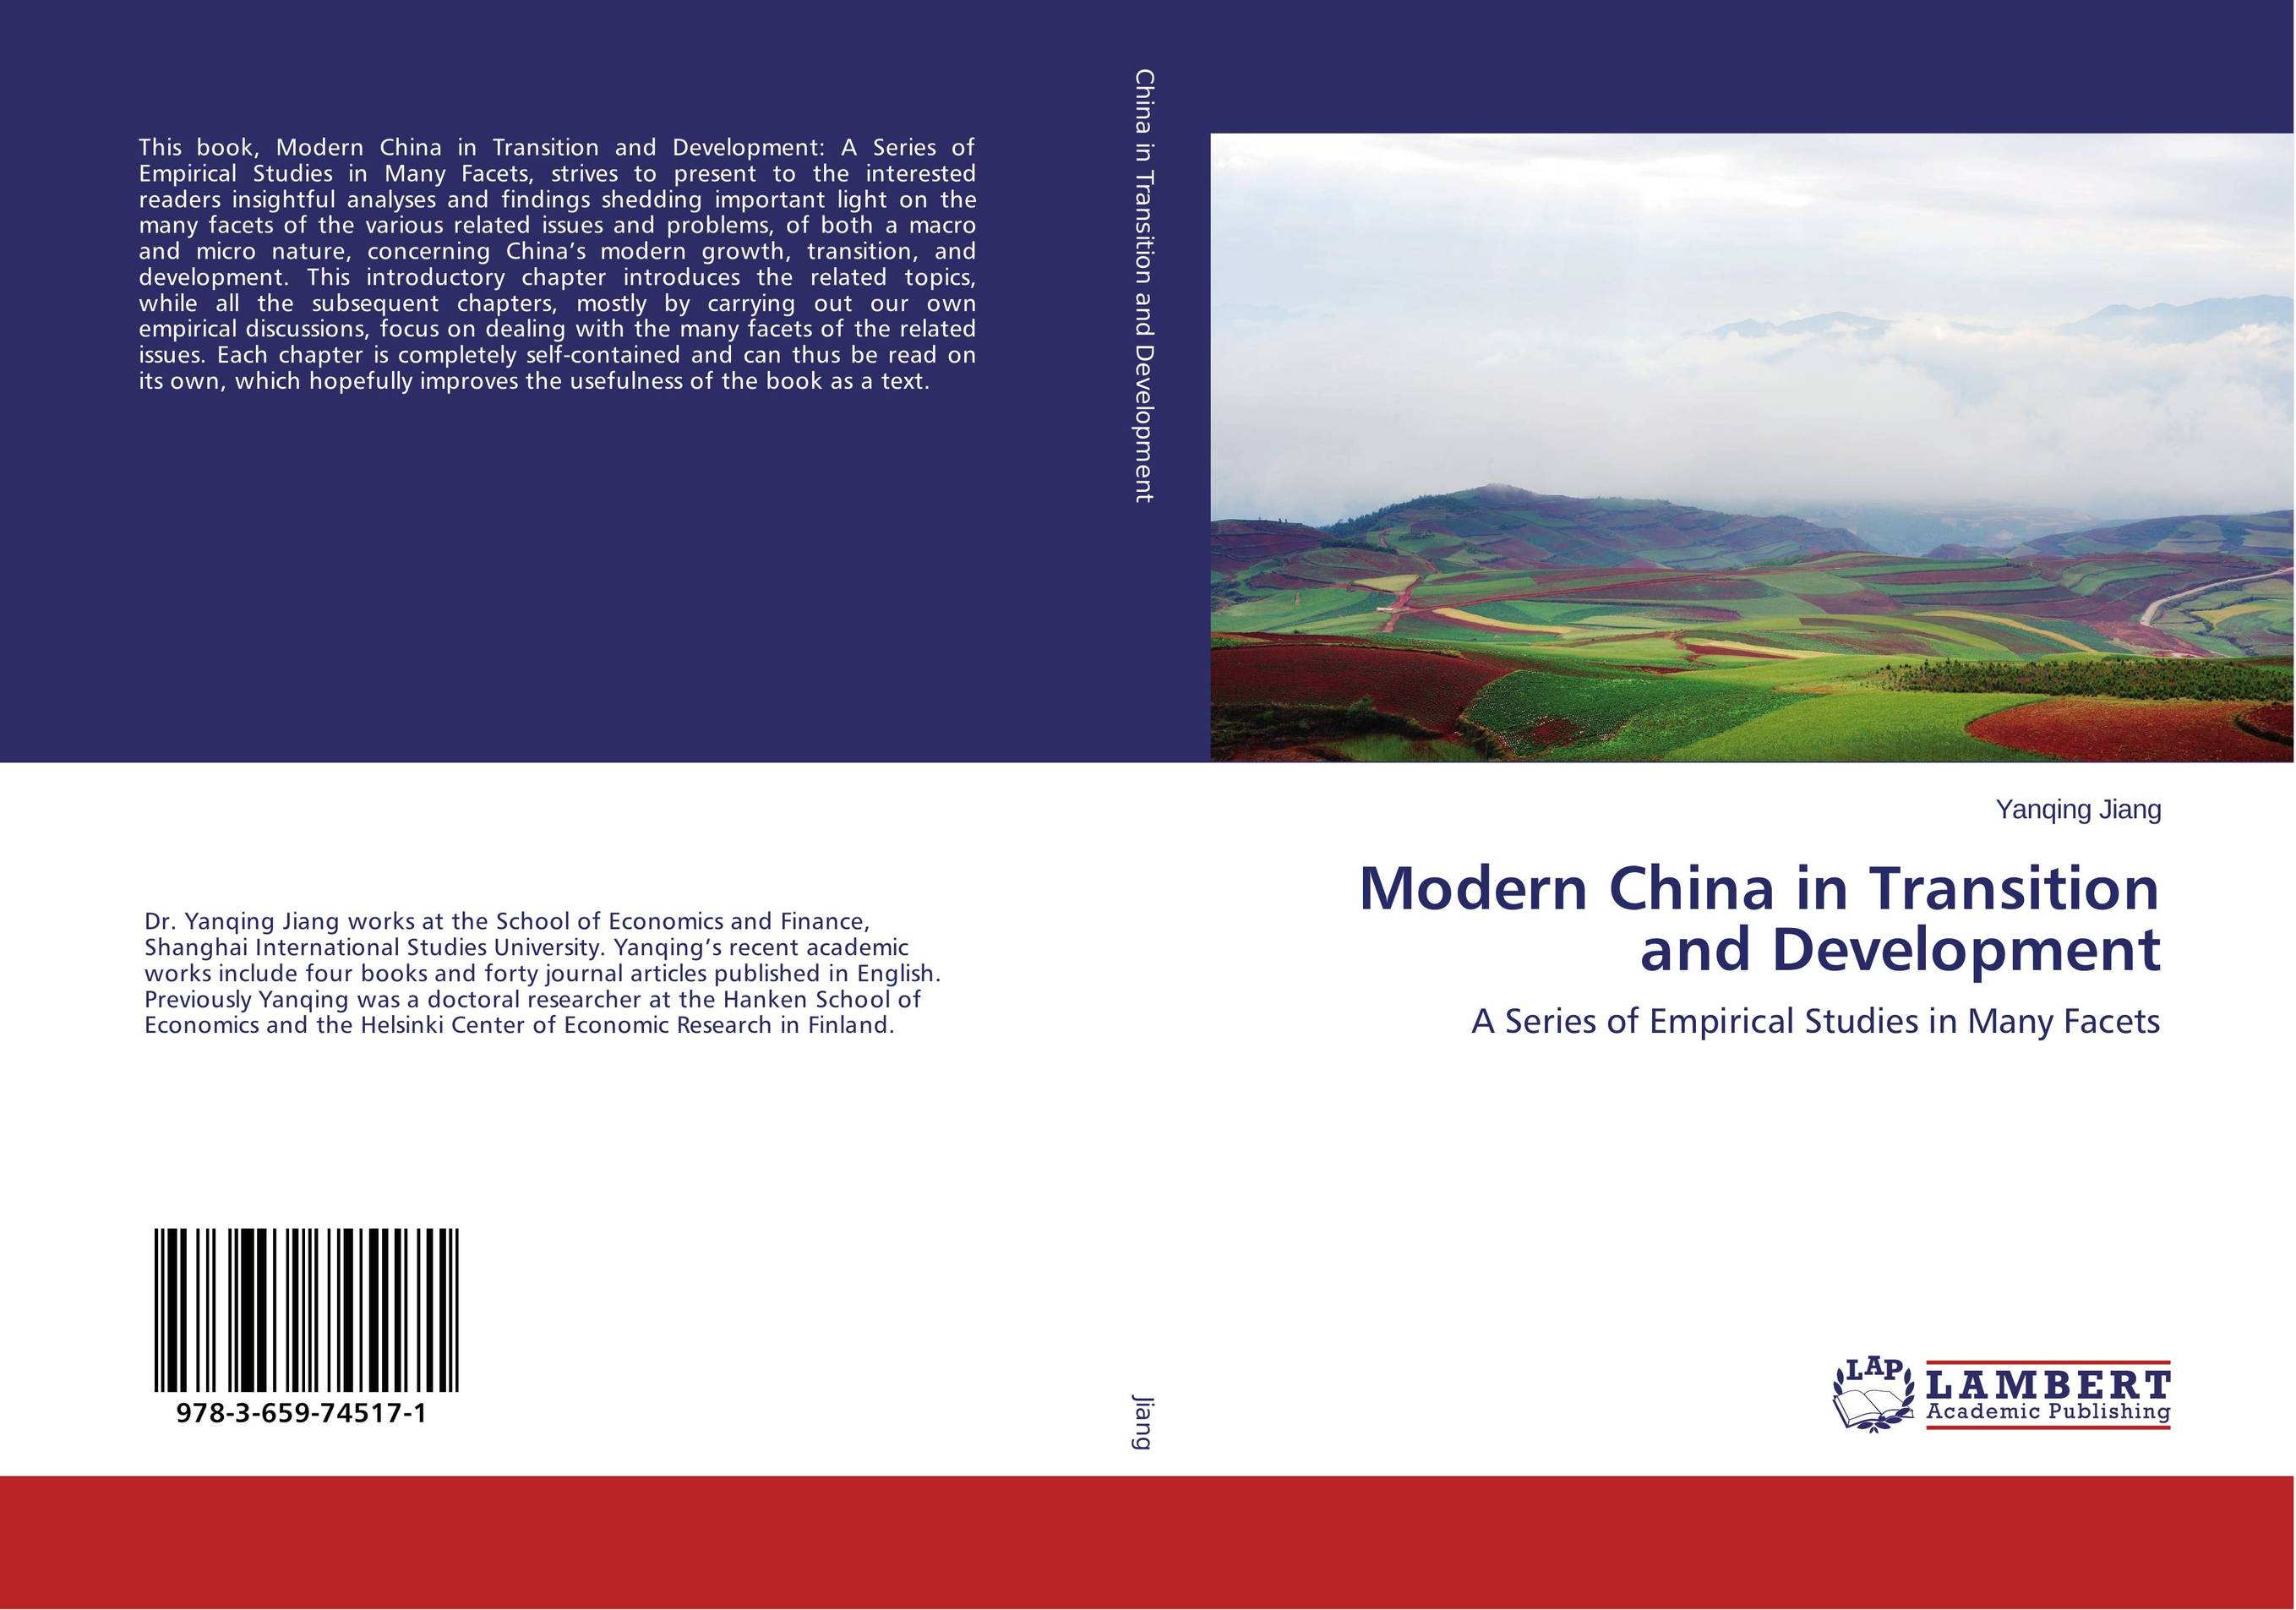 Modern China in Transition and Development 12 facets of a crystal